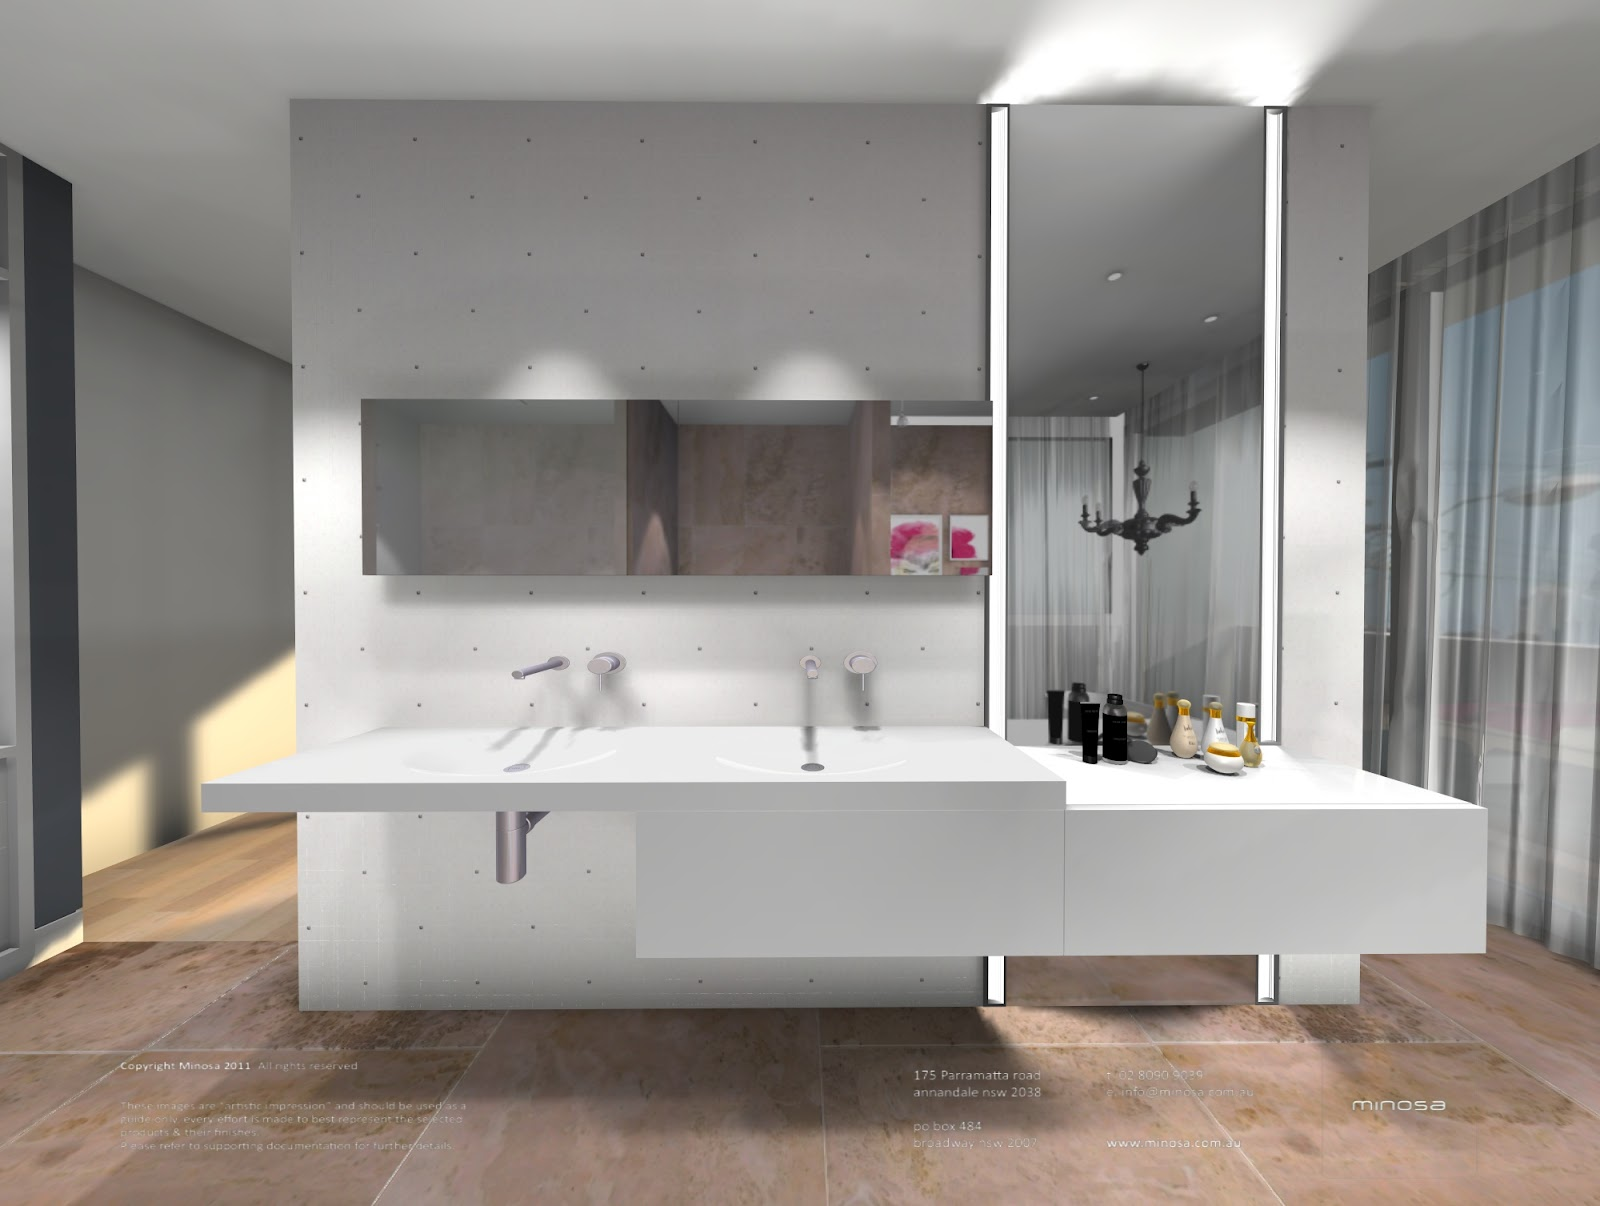 Minosa: Modern Bathroom Products